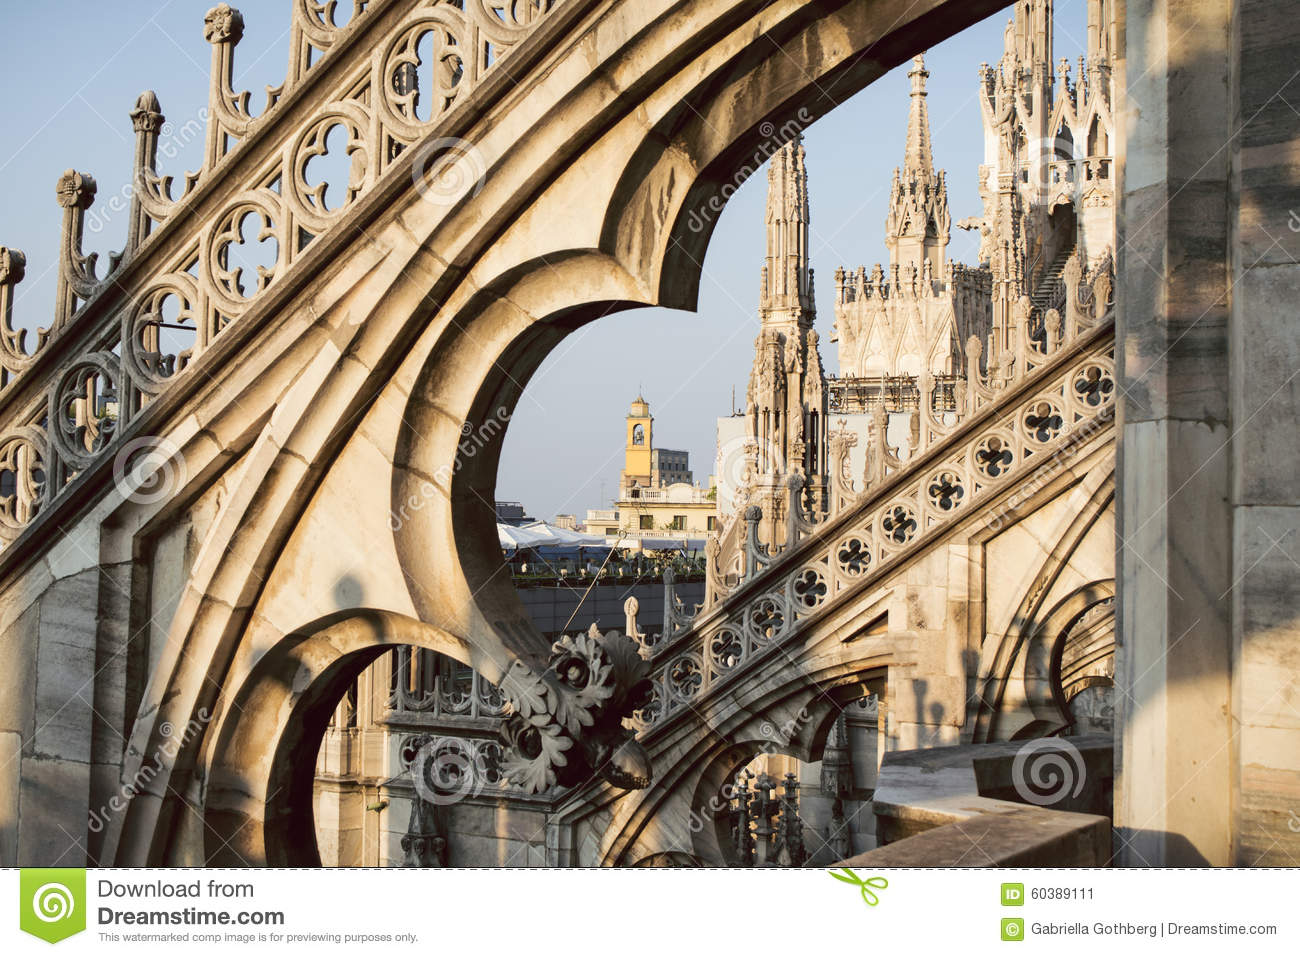 View through the arches and spires of the gothic cathedral Duomo di Milano, Italy.